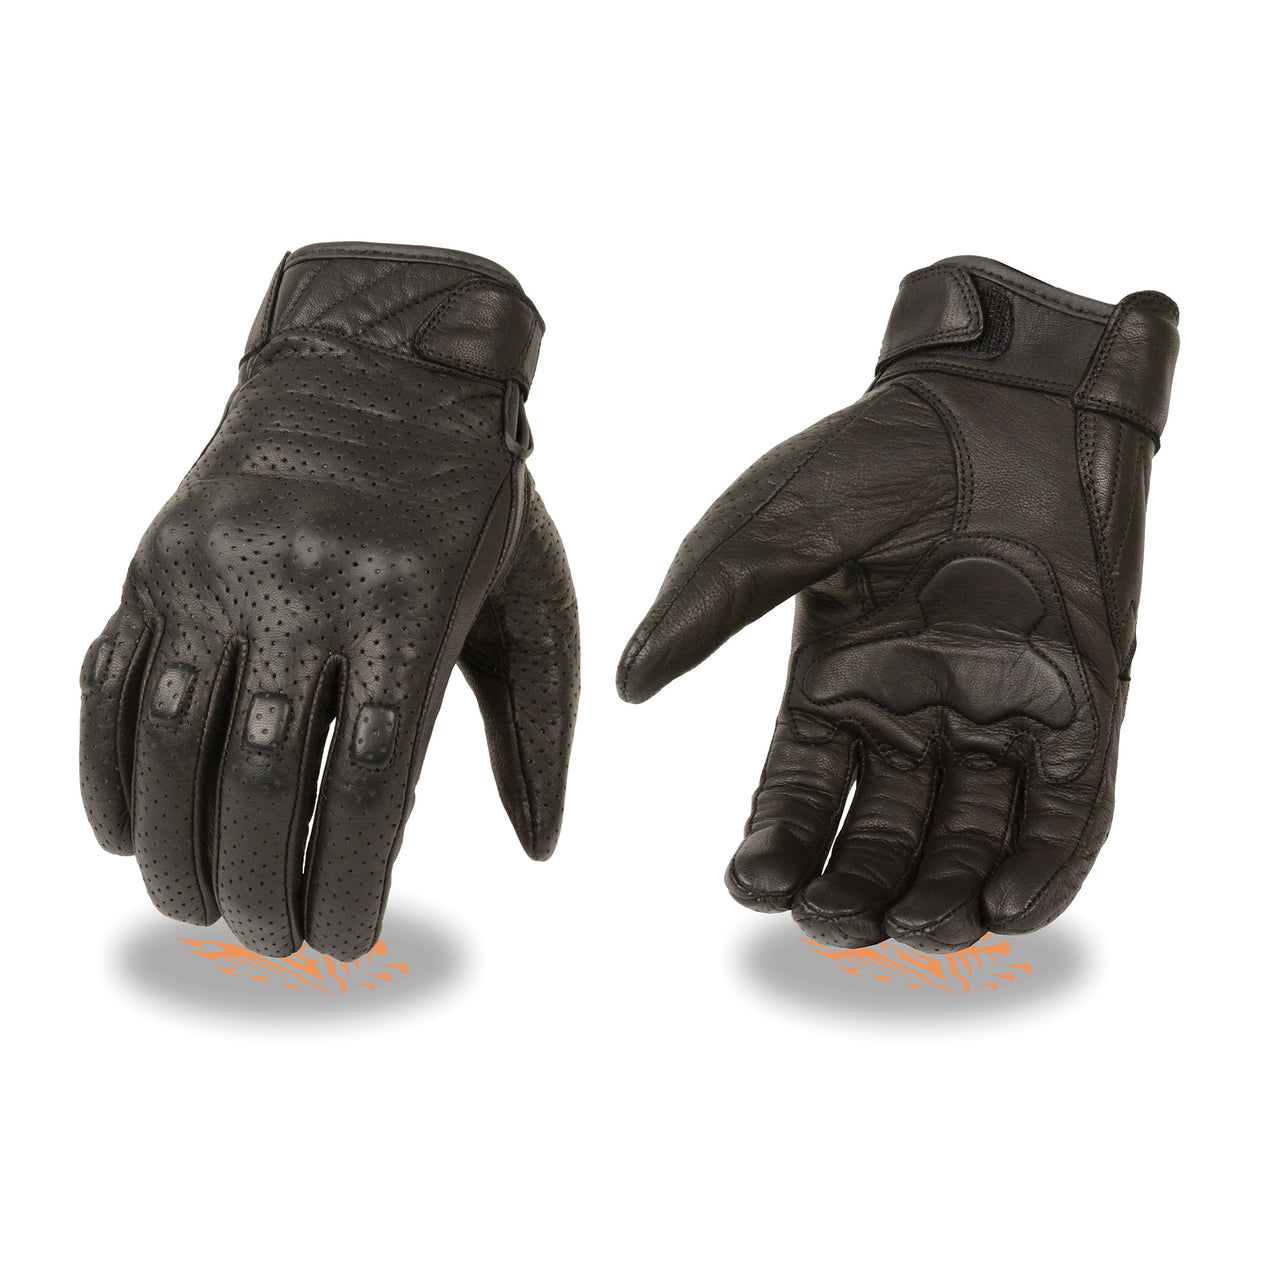 Men's Perforated Leather Gloves w/ Rubberized Knuckles & Gel Palm - HighwayLeather